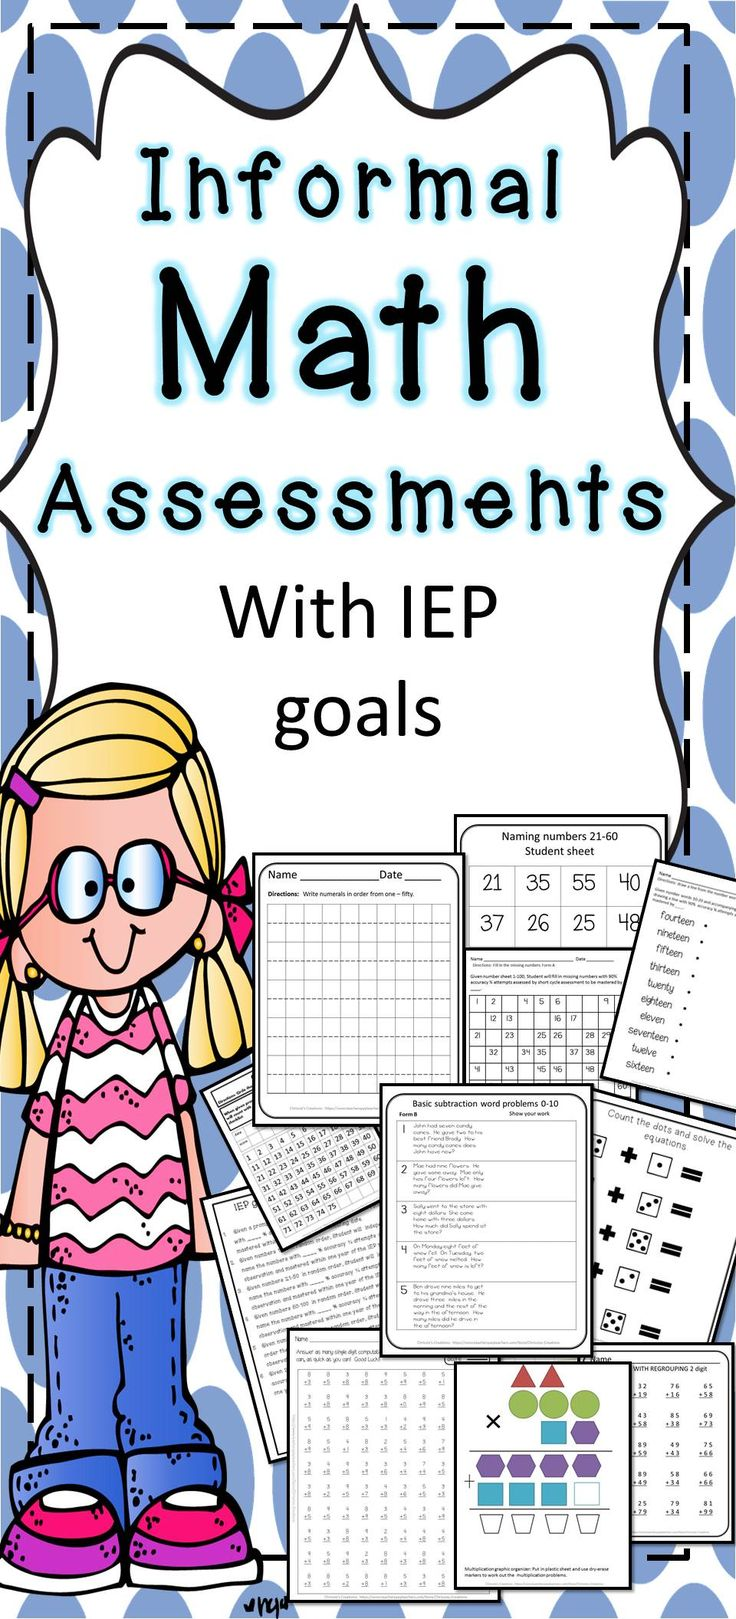 math assessments great for Back to school academic measuring.  These assessments are great for progress monitoring of IEP students and RTI.  Great way to get your interventions started.